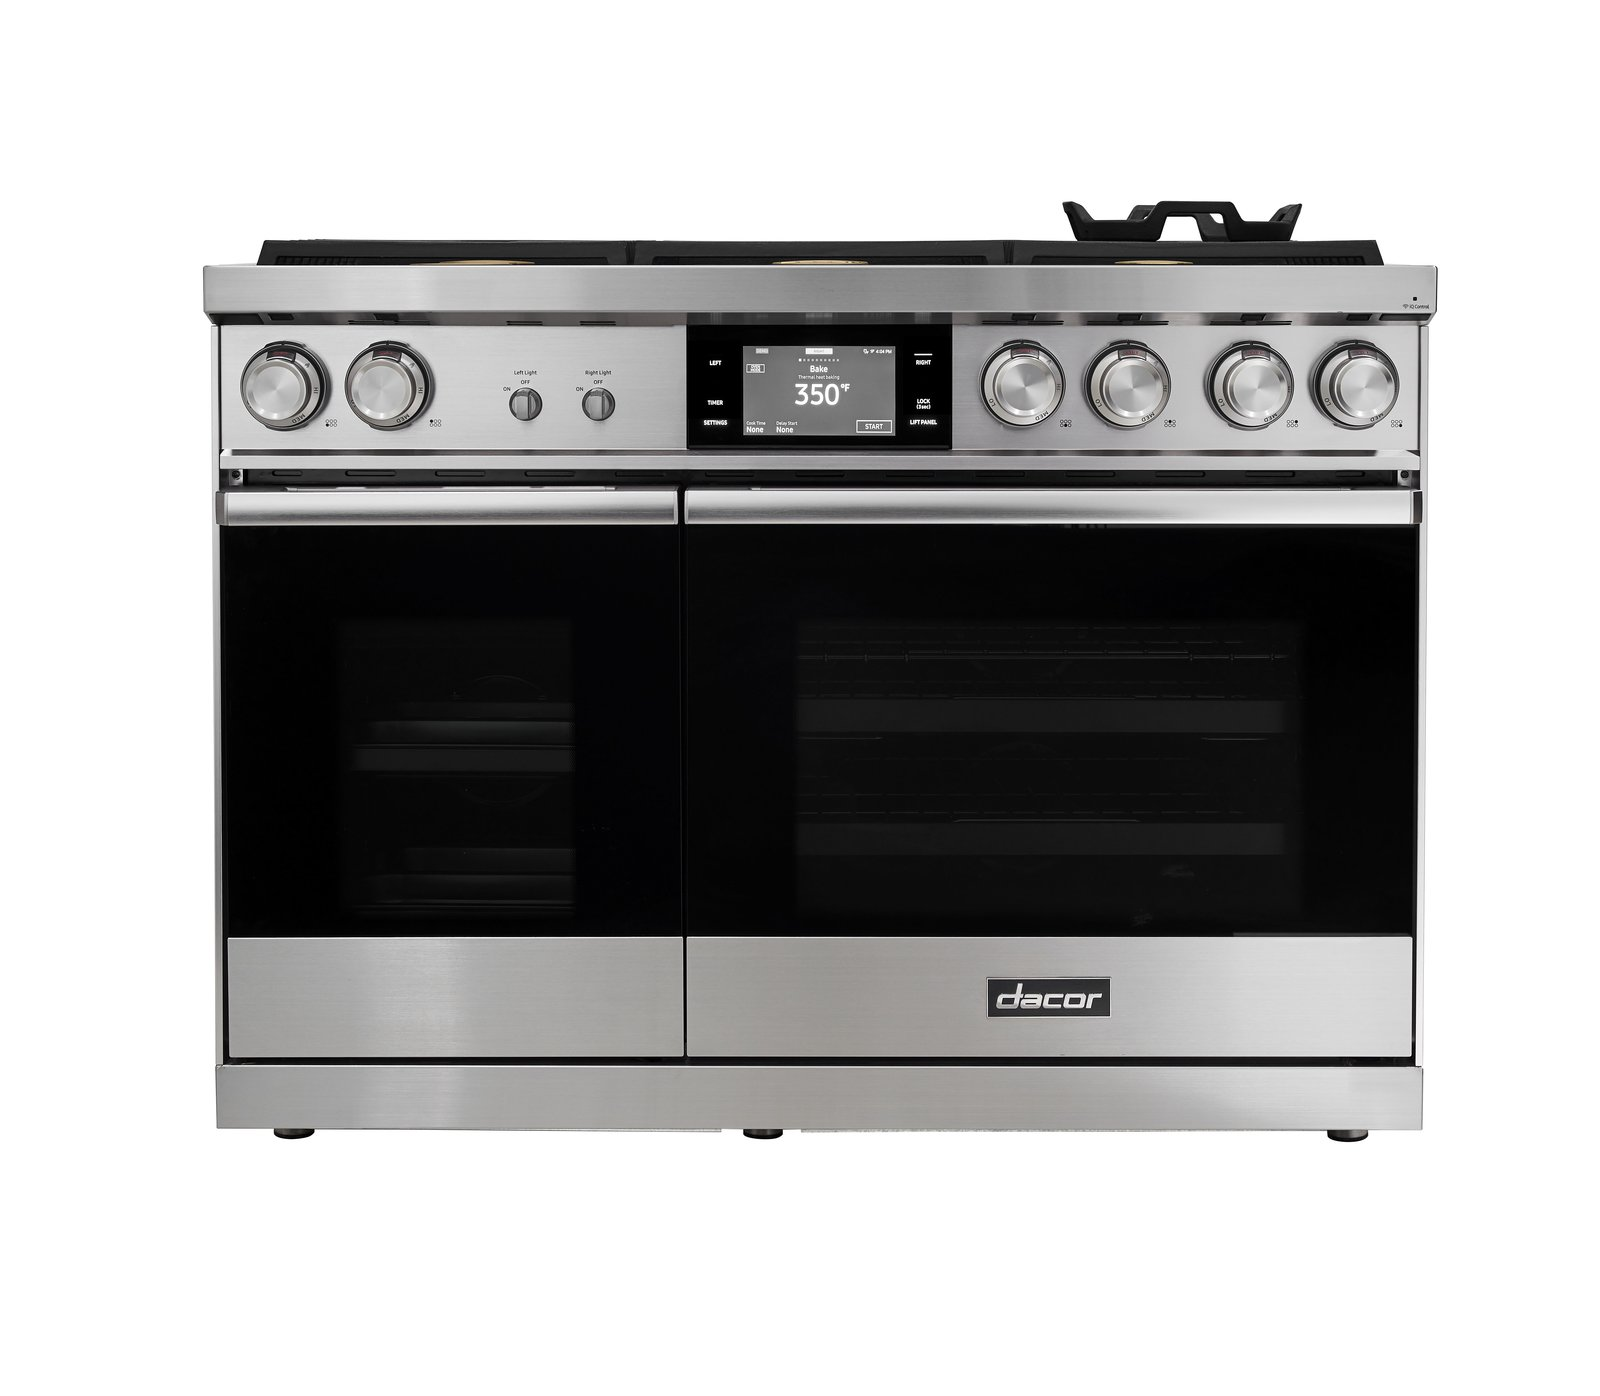 Dacor 48-inch Pro Dual Fuel Steam Range.  Photo 3 of 10 in Trend Report: The Internet Settles Into Our Appliances